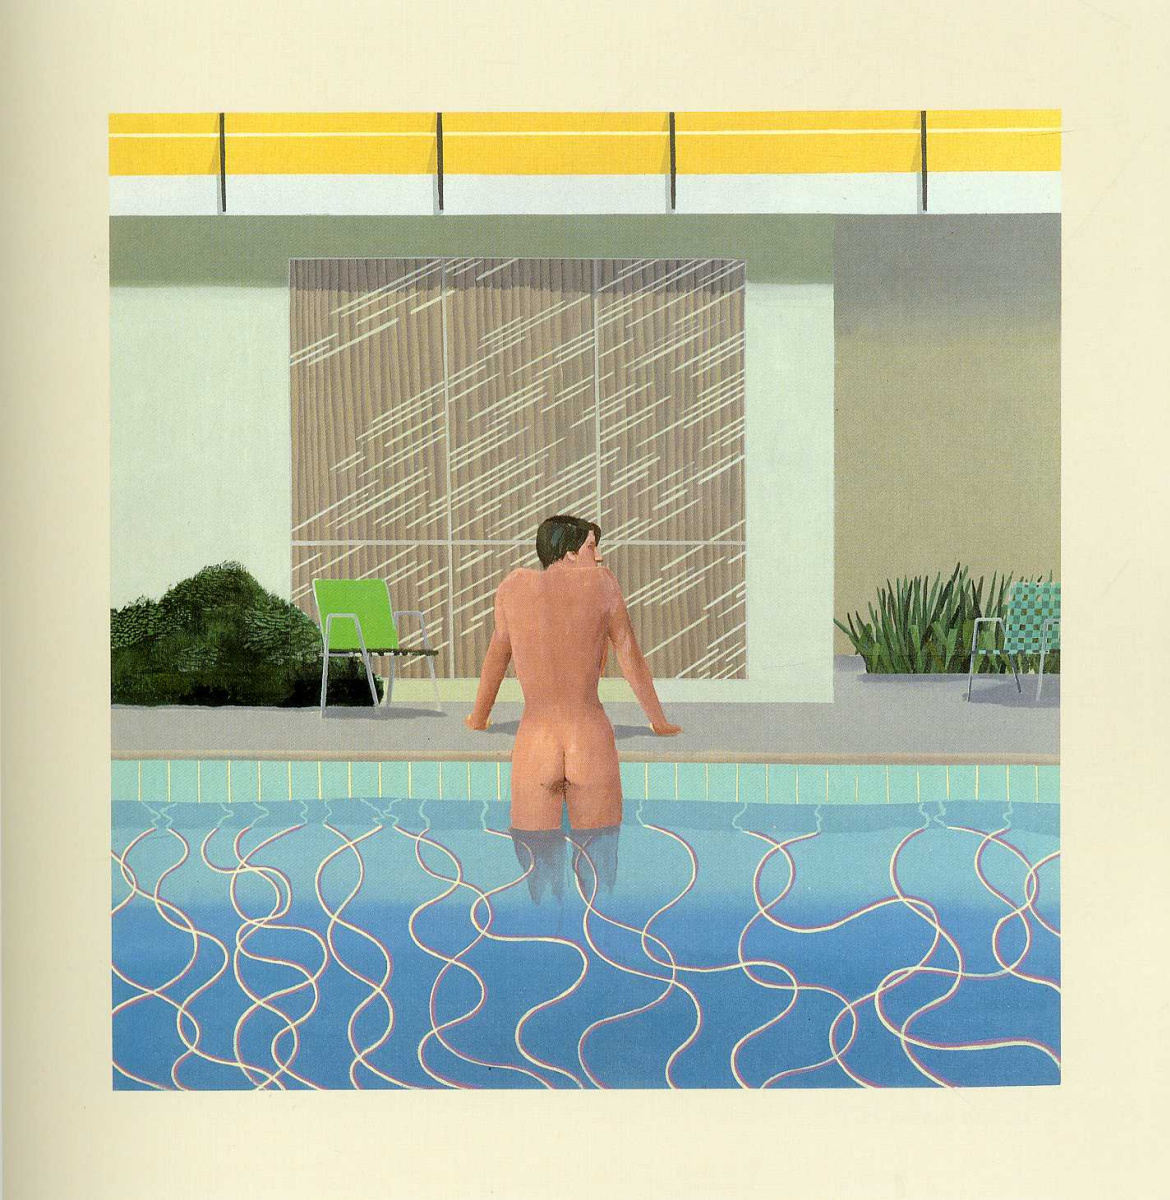 David Hockney. Peter getting out of Nick's pool